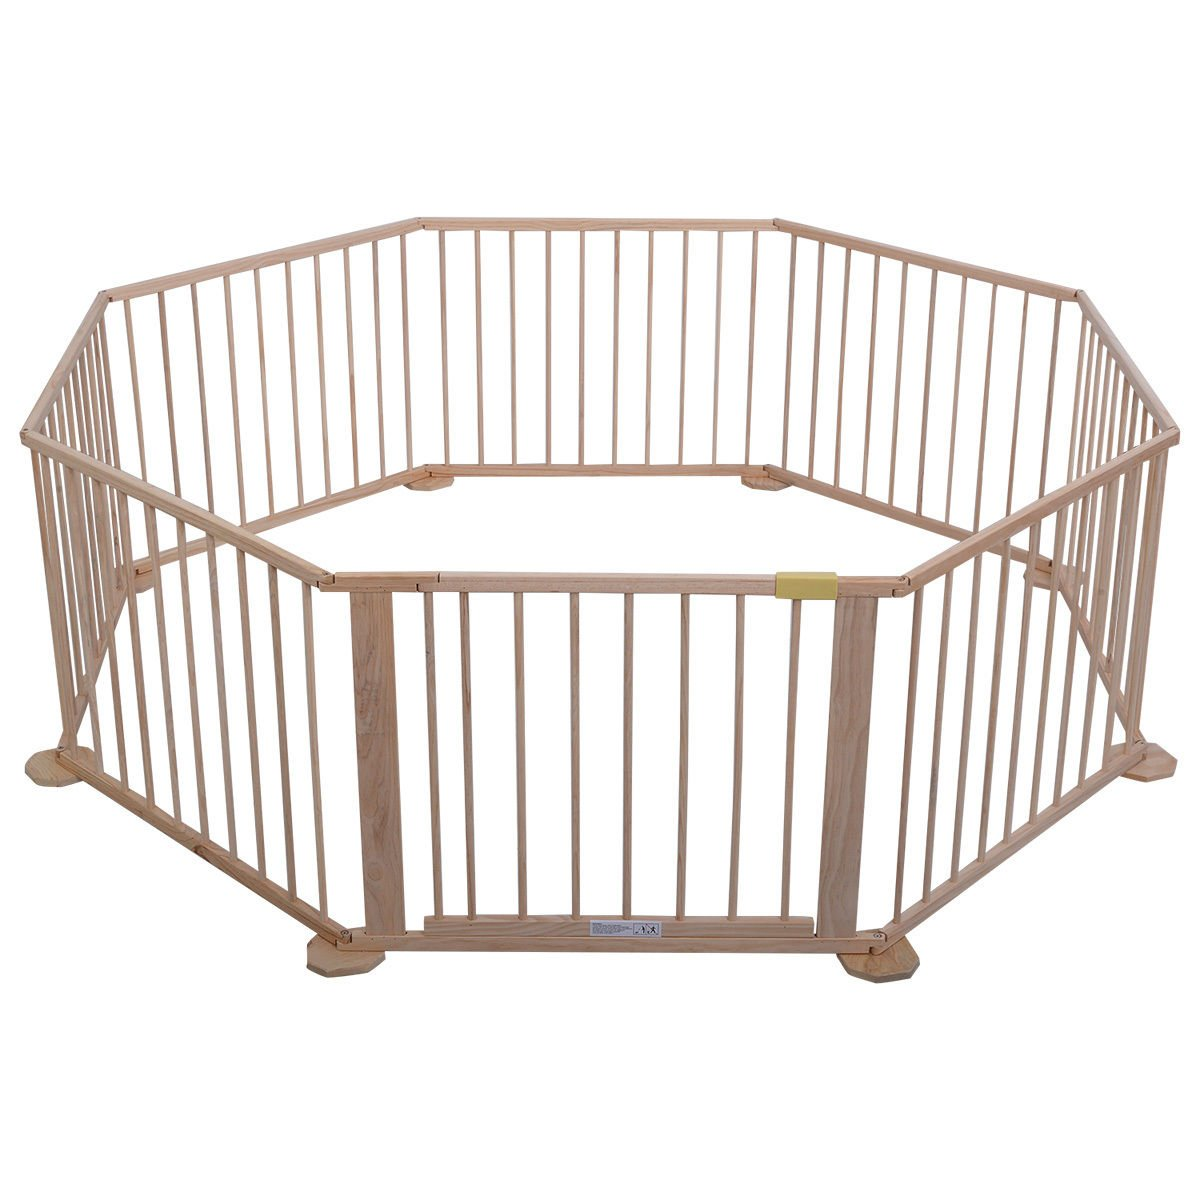 Wood Solid Pine Wood Baby Playpen With Ebook by MRT SUPPLY (Image #3)